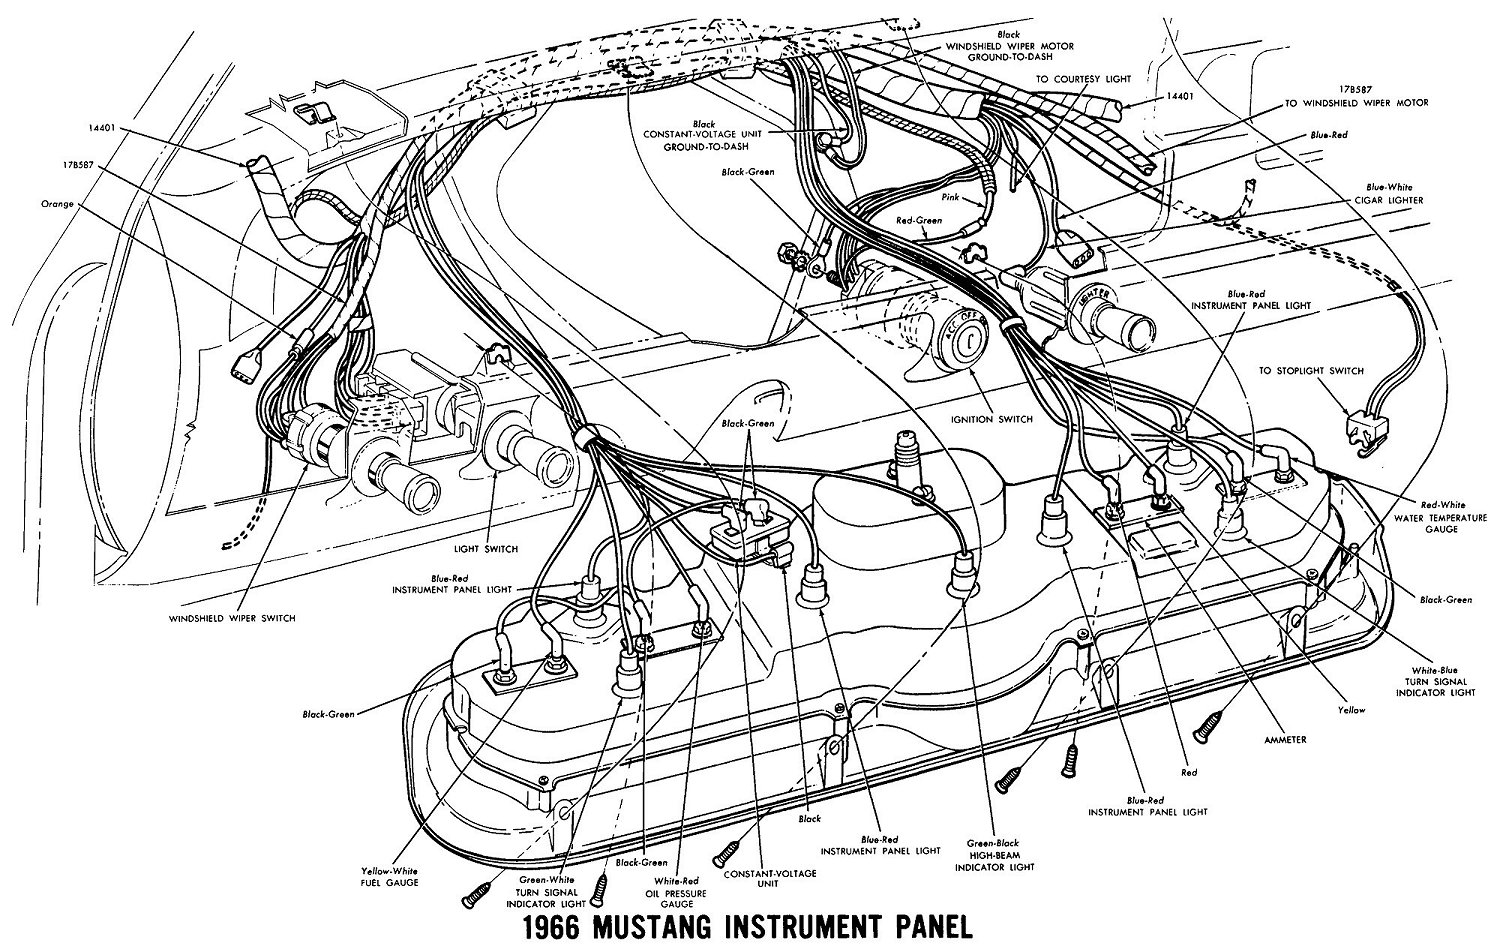 66instr 1966 mustang wiring diagrams average joe restoration 1966 mustang voltage regulator wiring diagram at gsmx.co